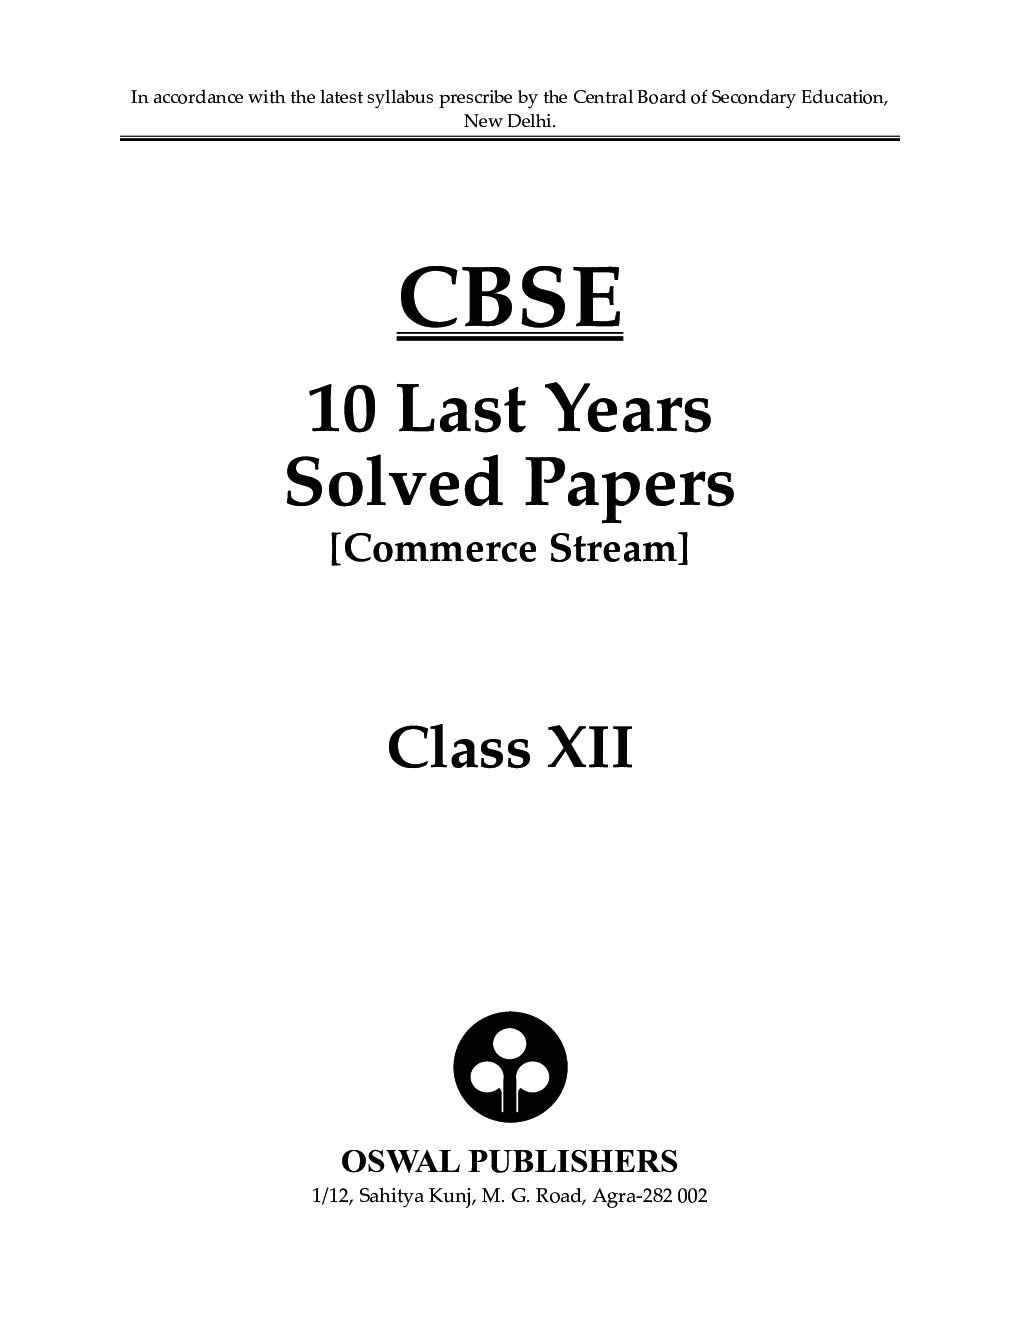 Download Oswal CBSE Last 10 Years Solved Papers For Class